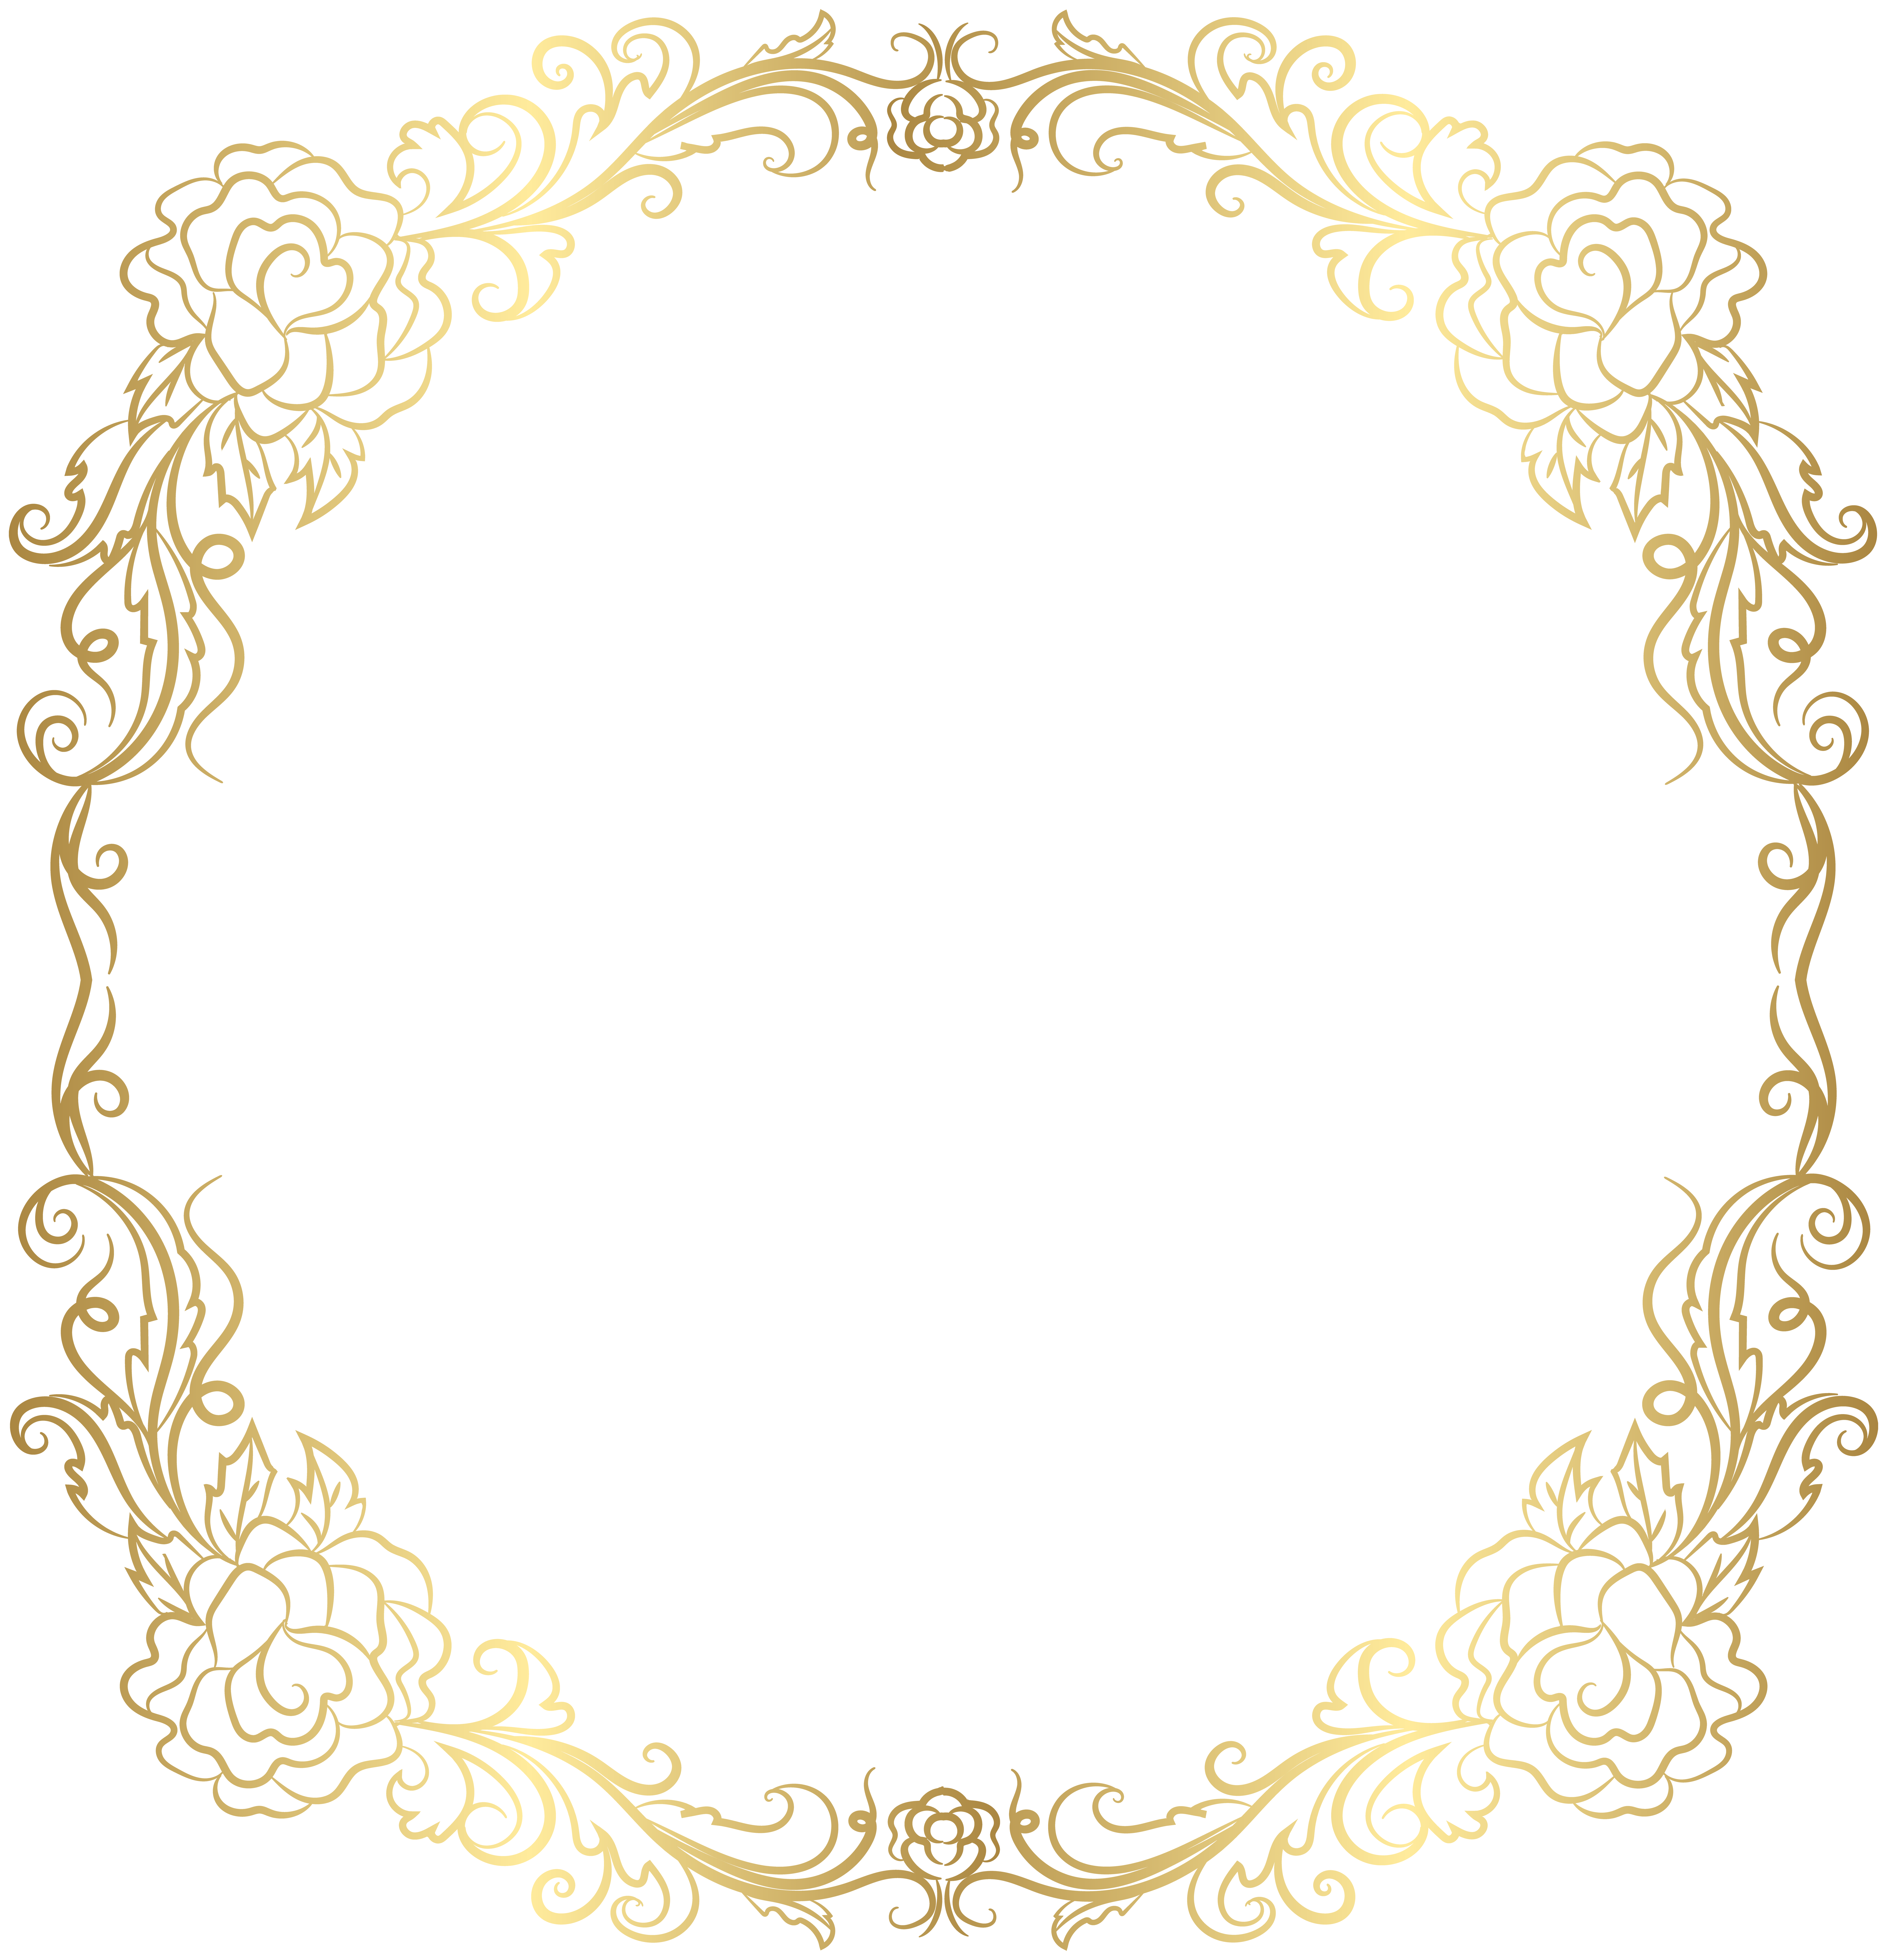 Deco Golden Border Frame Png Clip Art Gallery Yopriceville High Quality Images And Transparent Png Free Clipart Borders And Frames Clip Art Free Clip Art